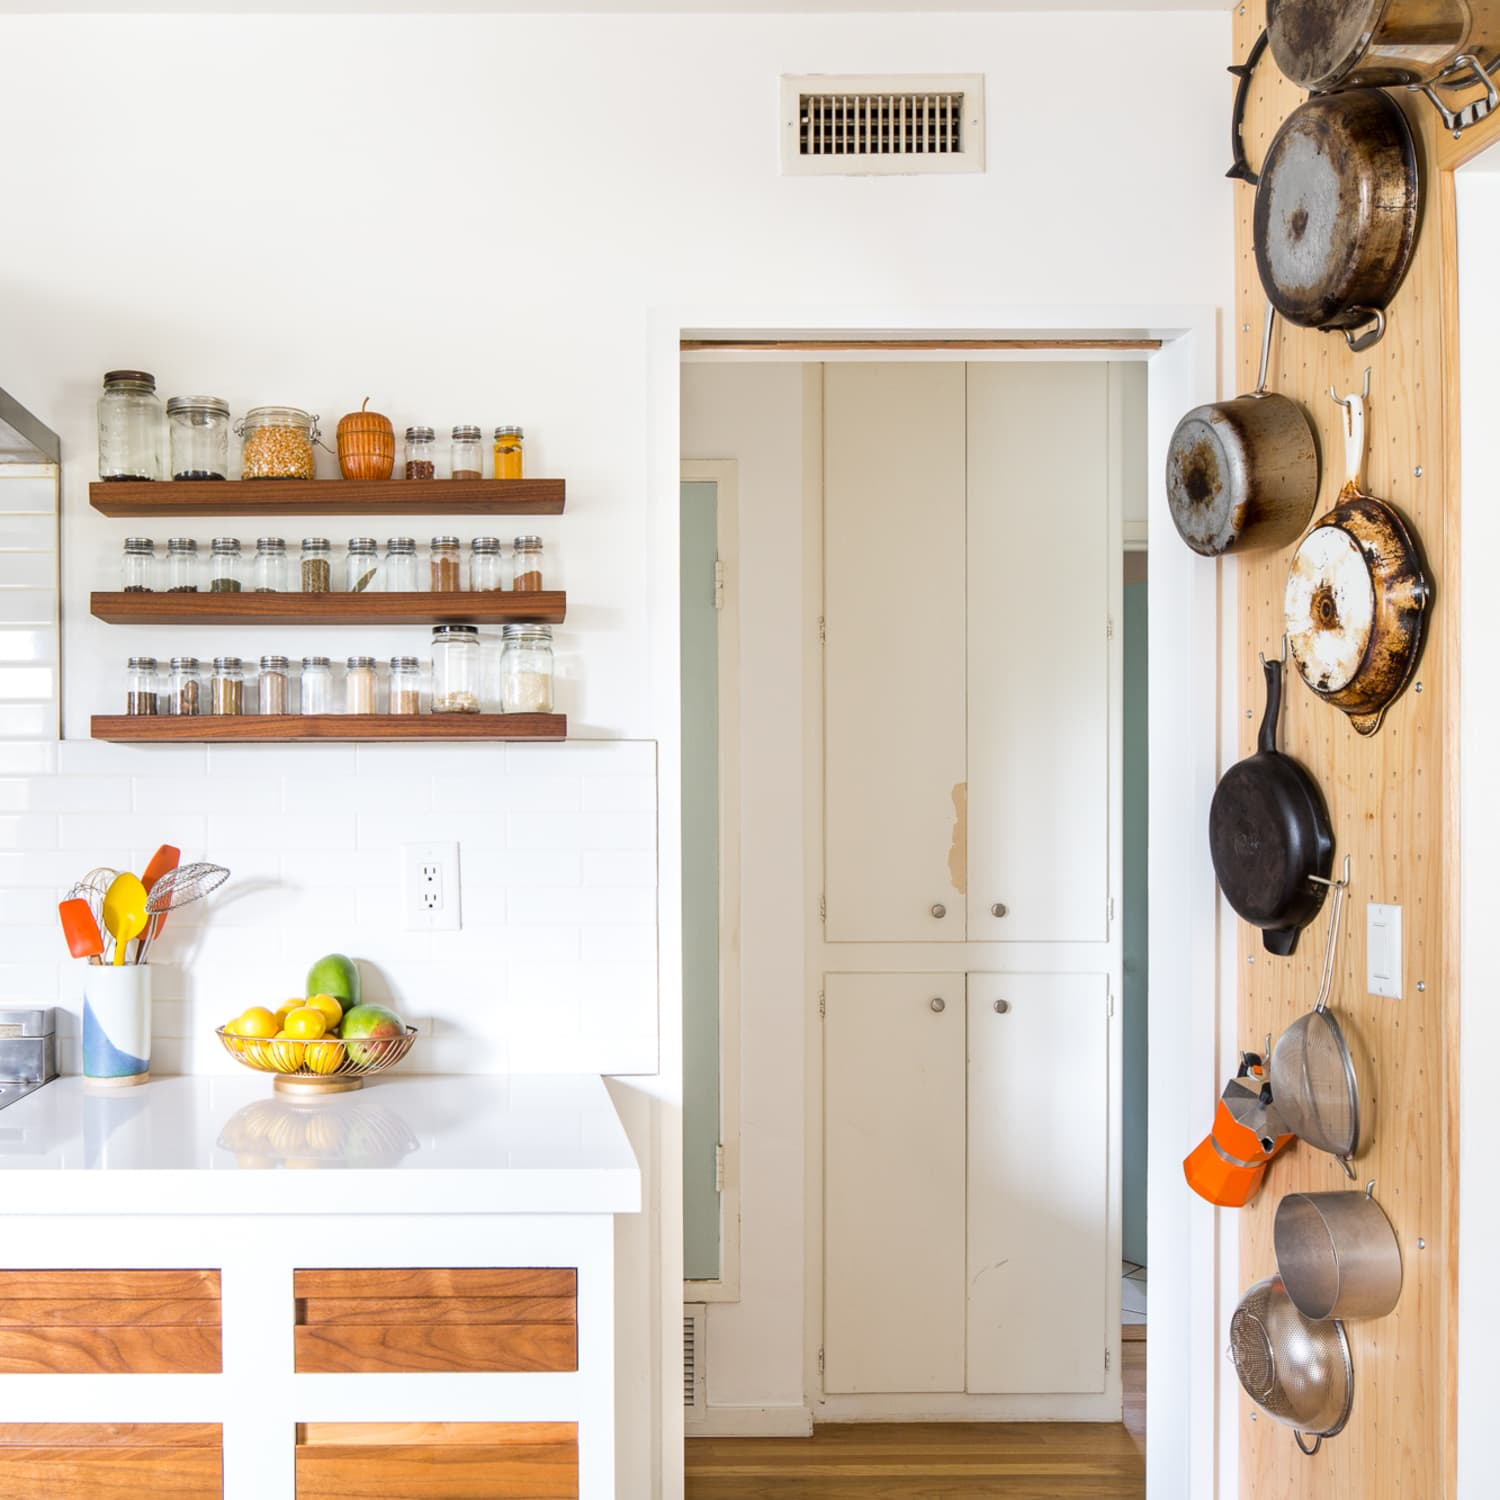 23 Clever Ideas For Kitchen Counter Organization Apartment Therapy